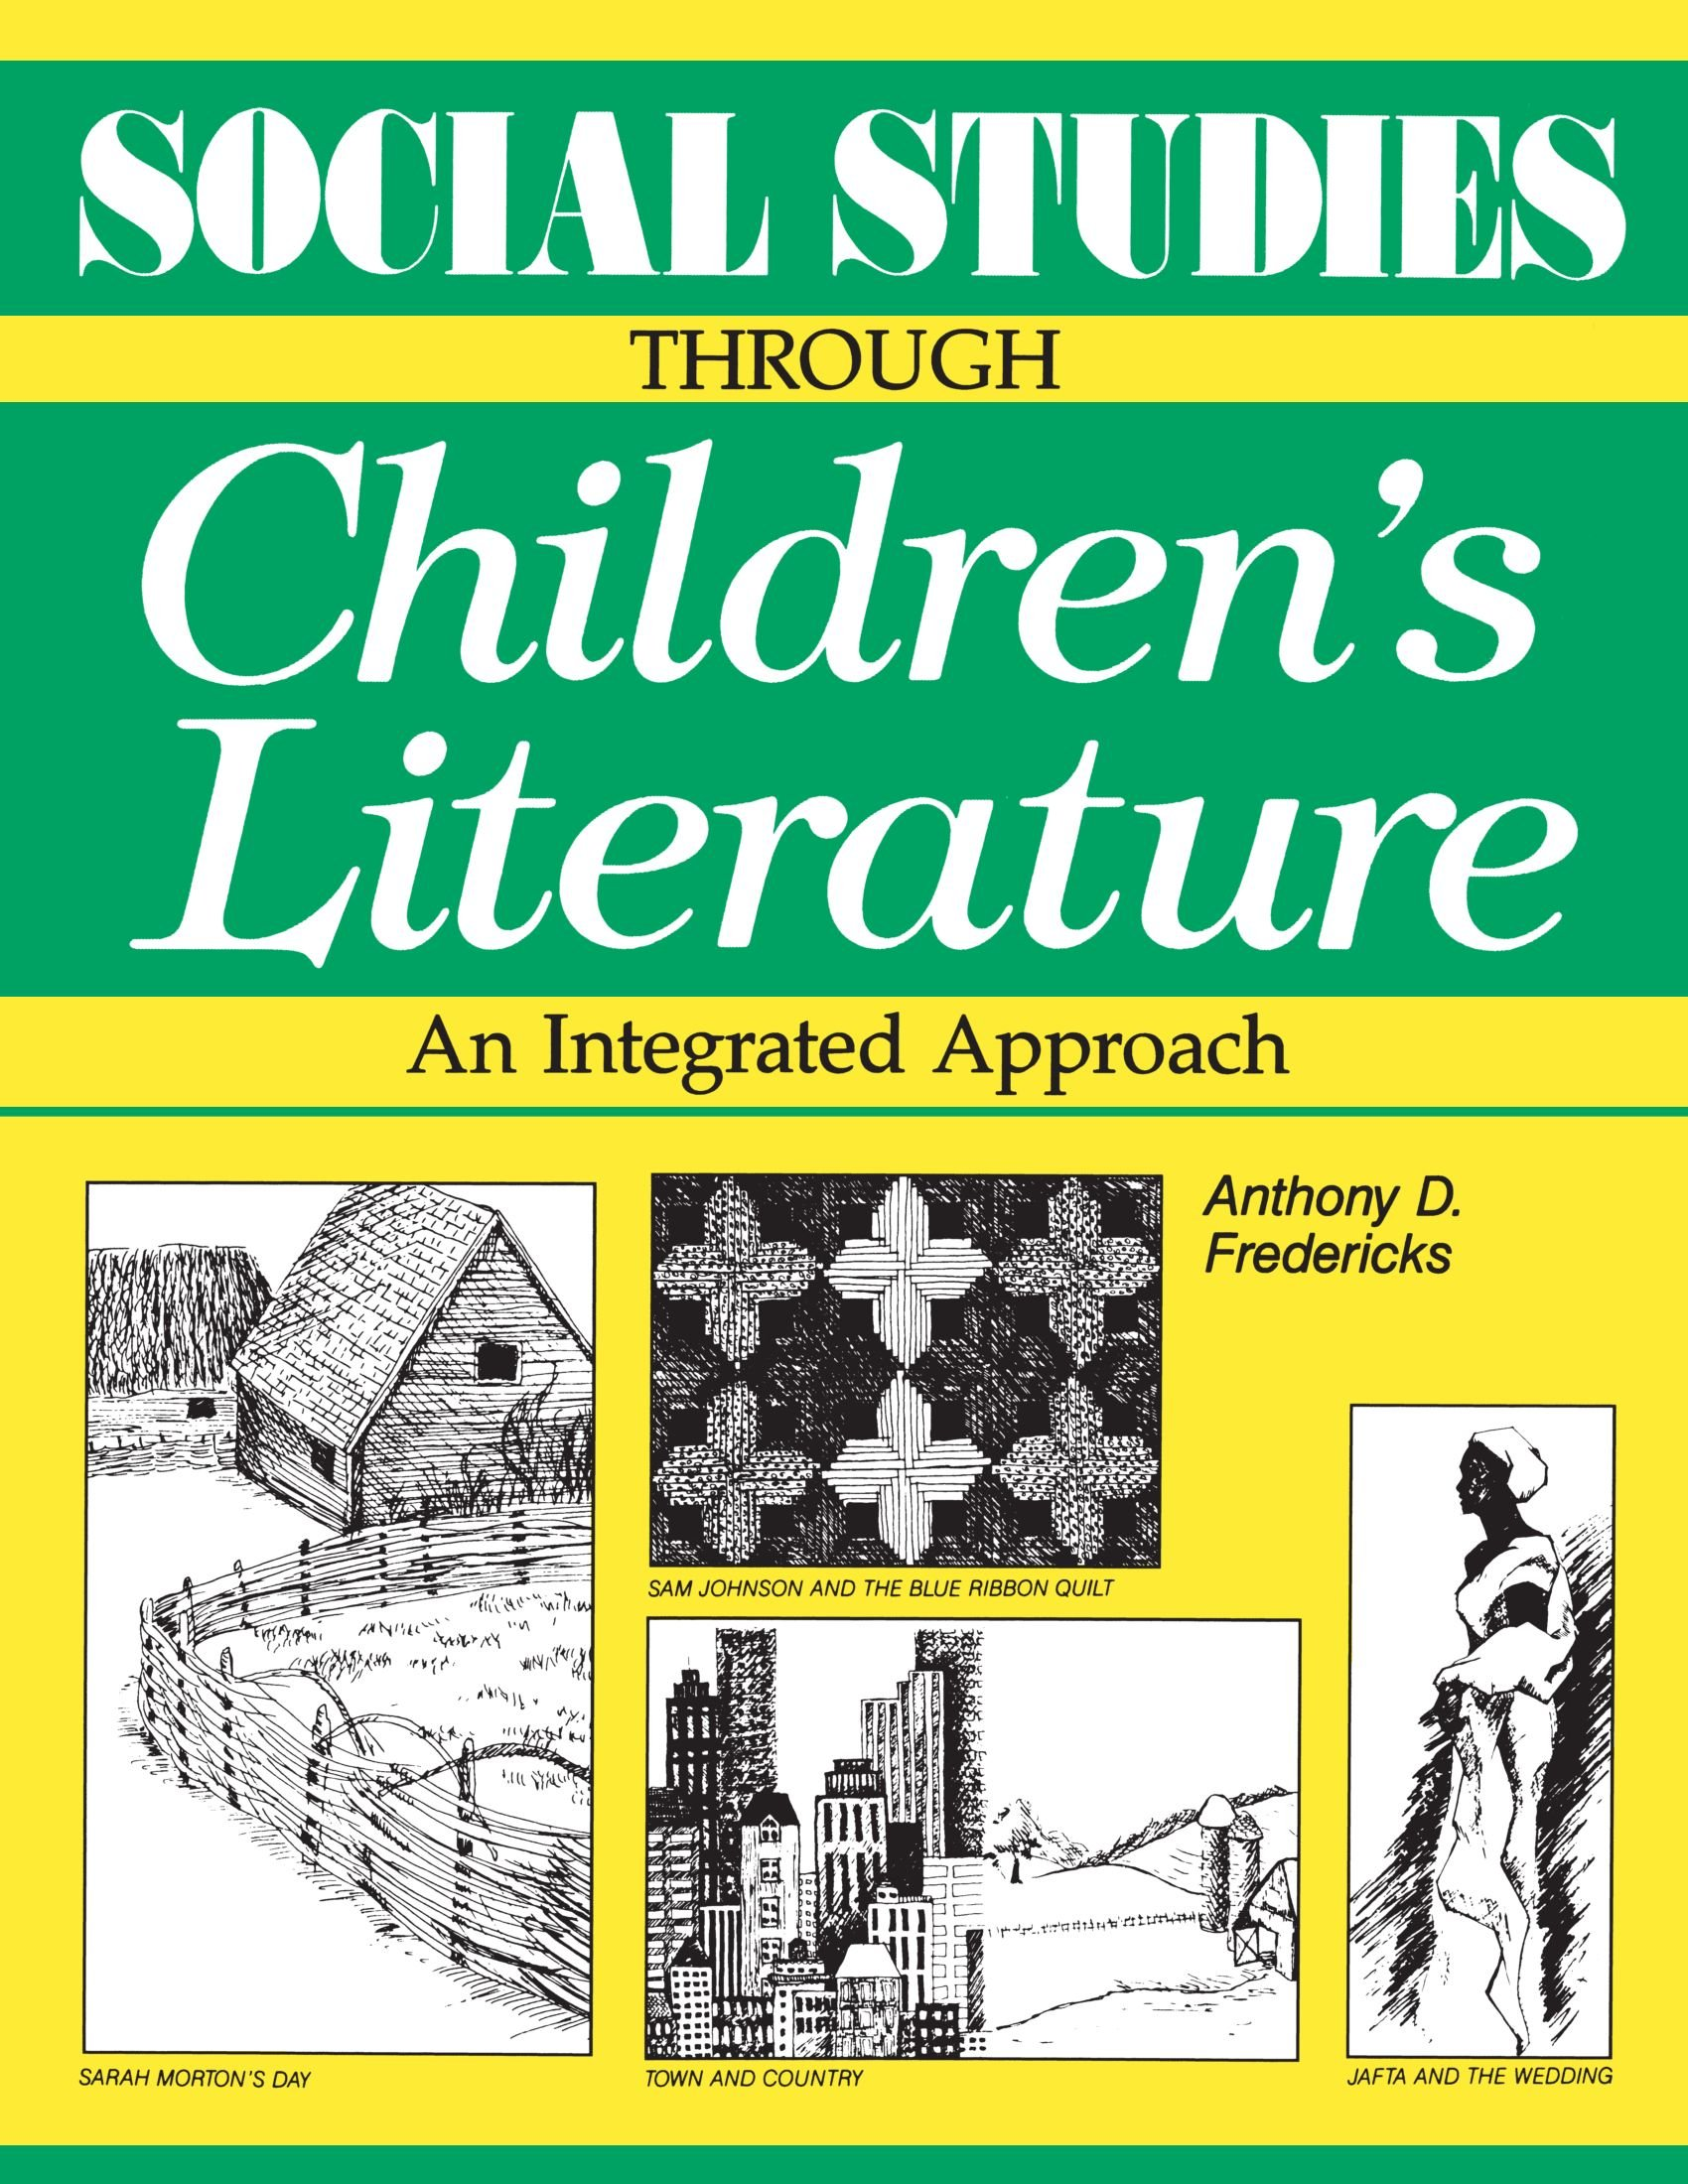 Social Studies Through Children's Literature: An Integrated Approach:  Amazon.co.uk: Anthony D. Fredericks: 9780872879706: Books